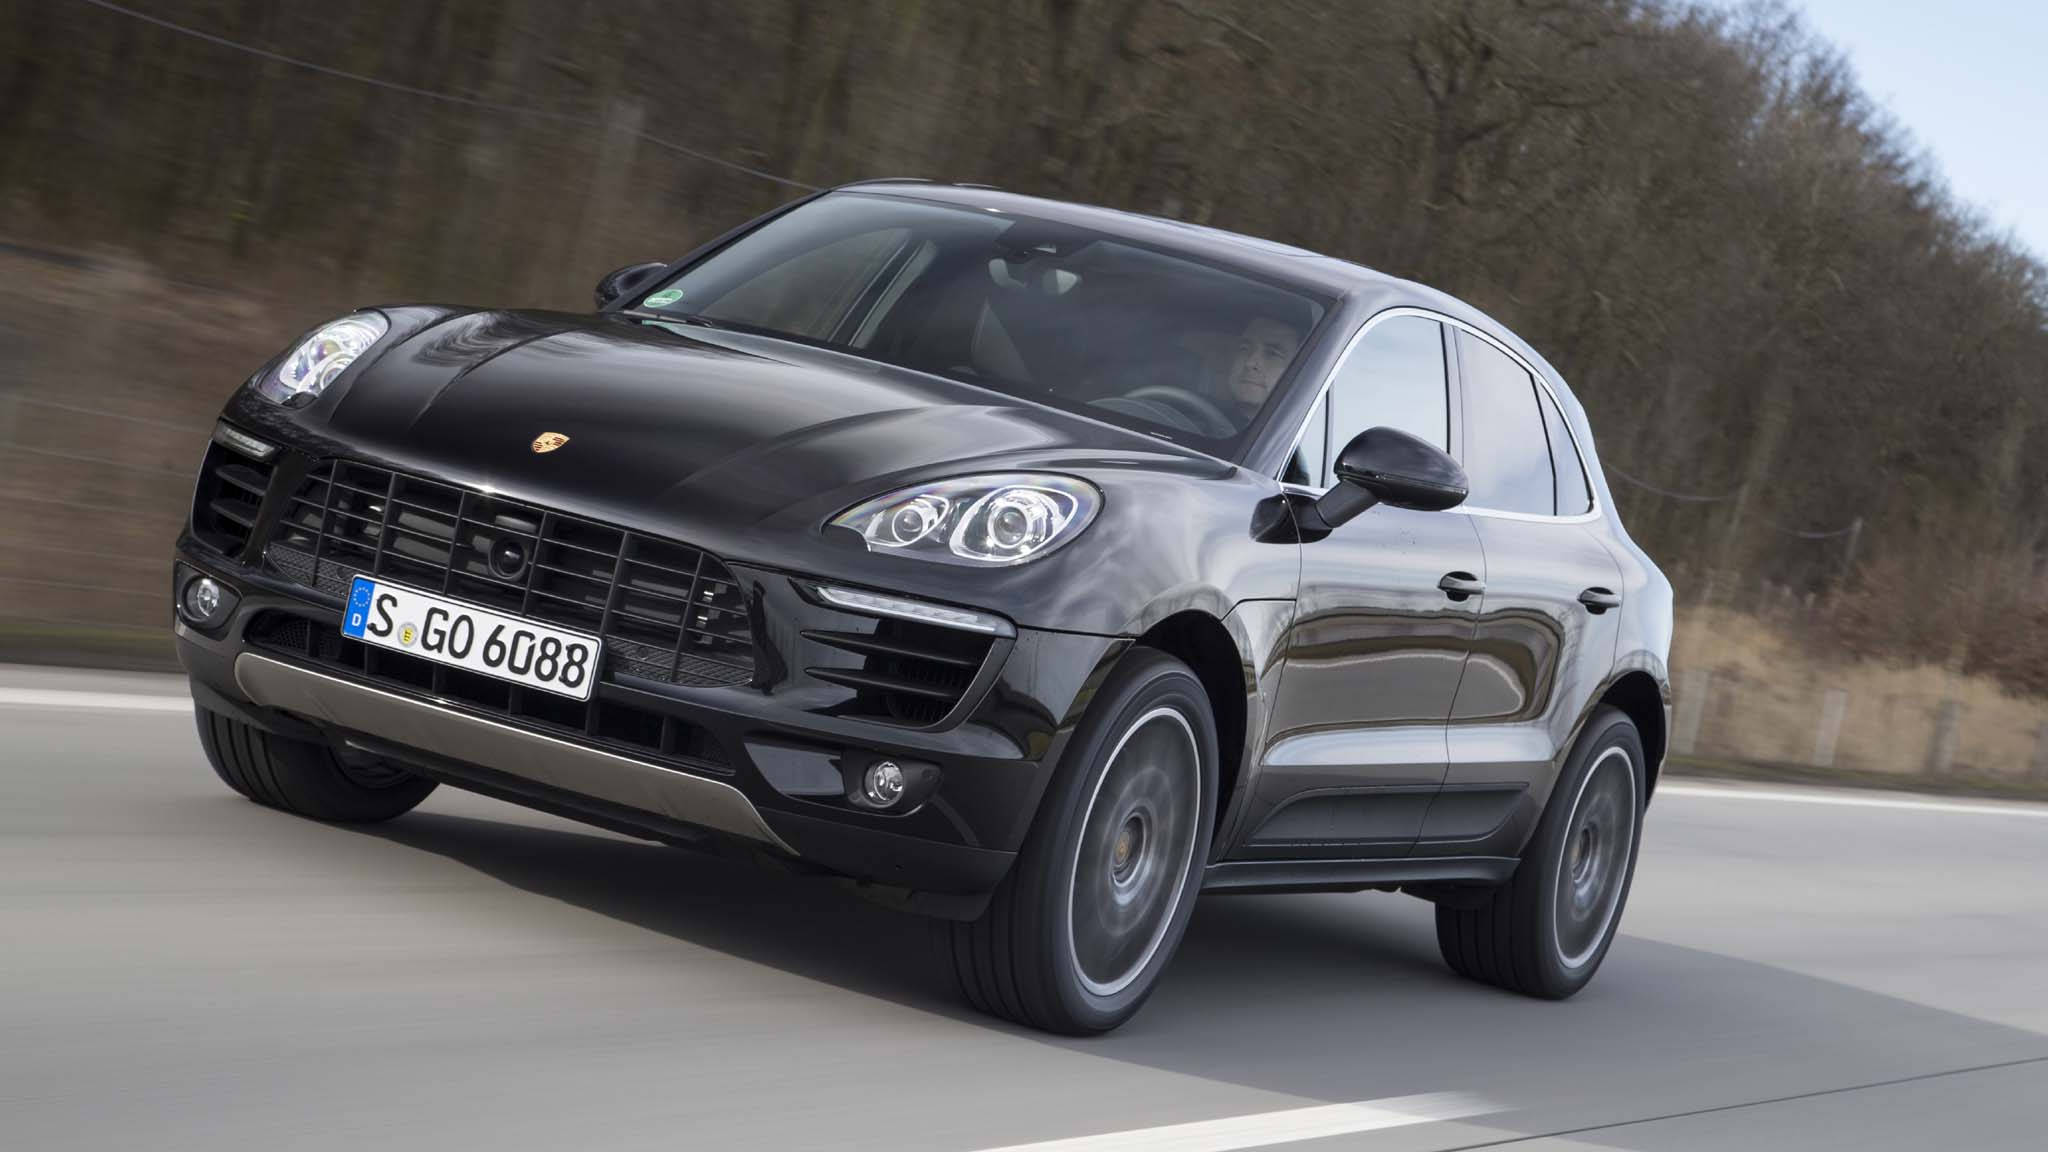 2015 Porsche Macan S Front Three Quarters In Motion 02